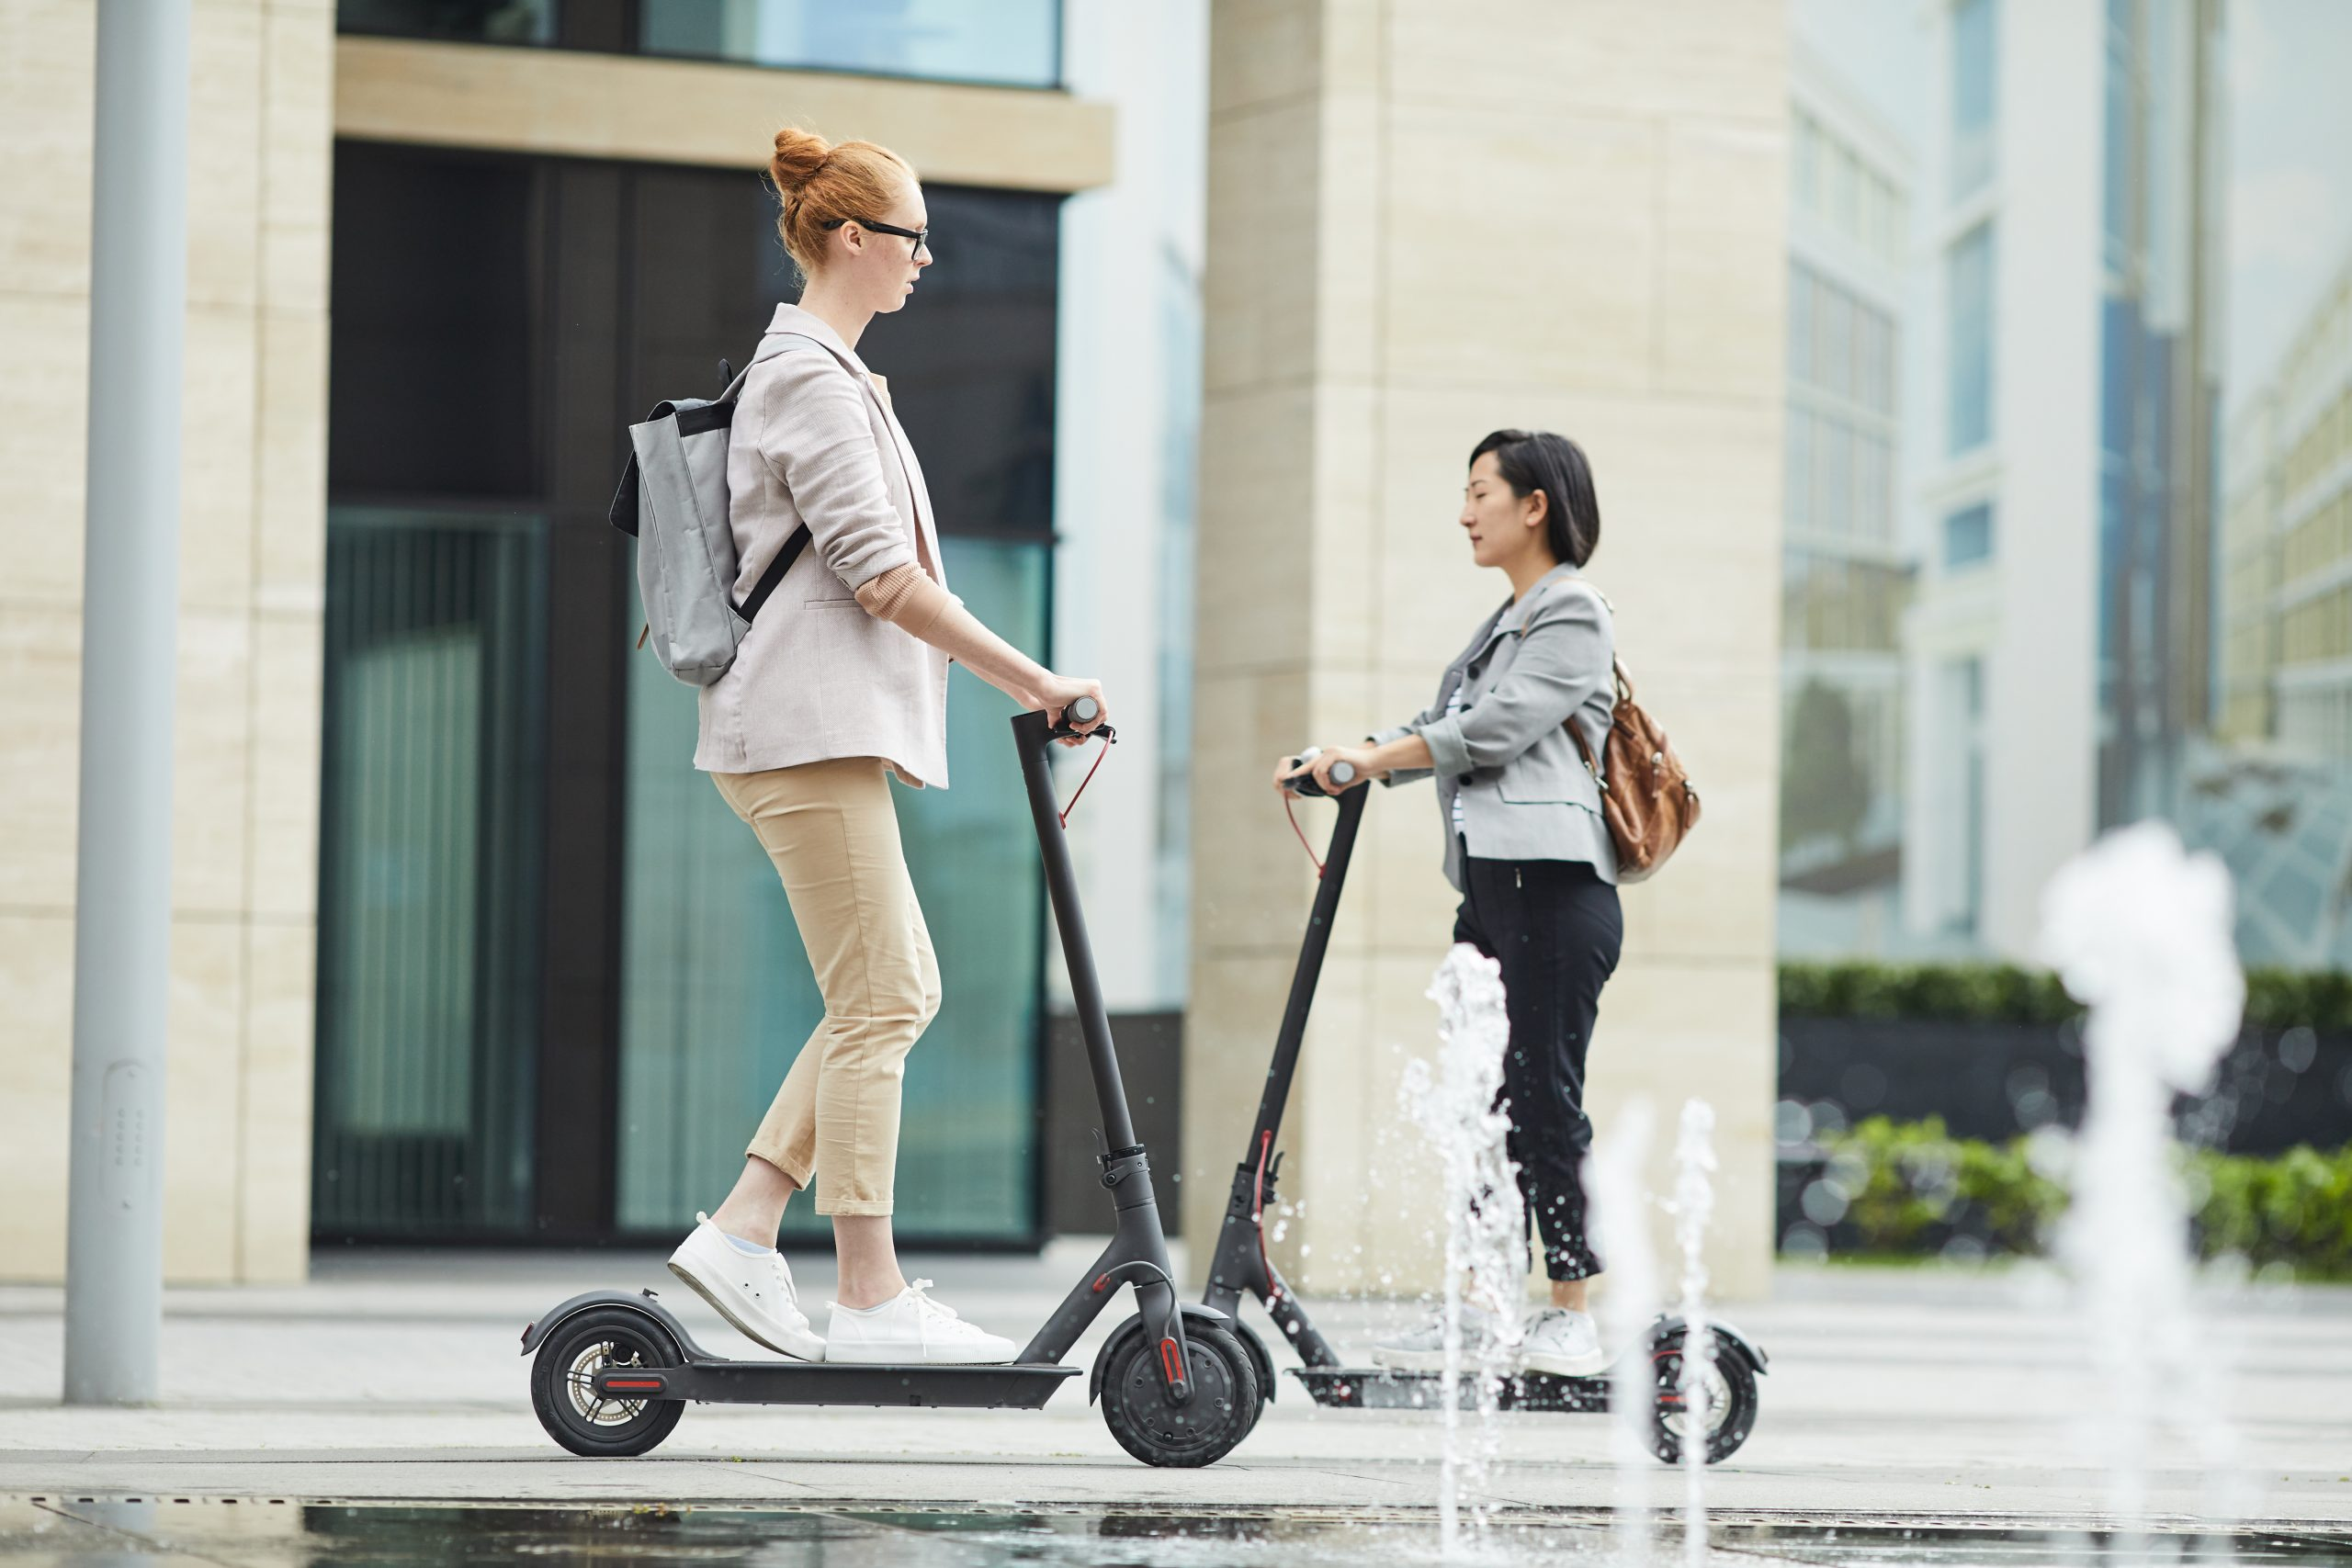 Electric Scooters – Trials begin in Middlesborough